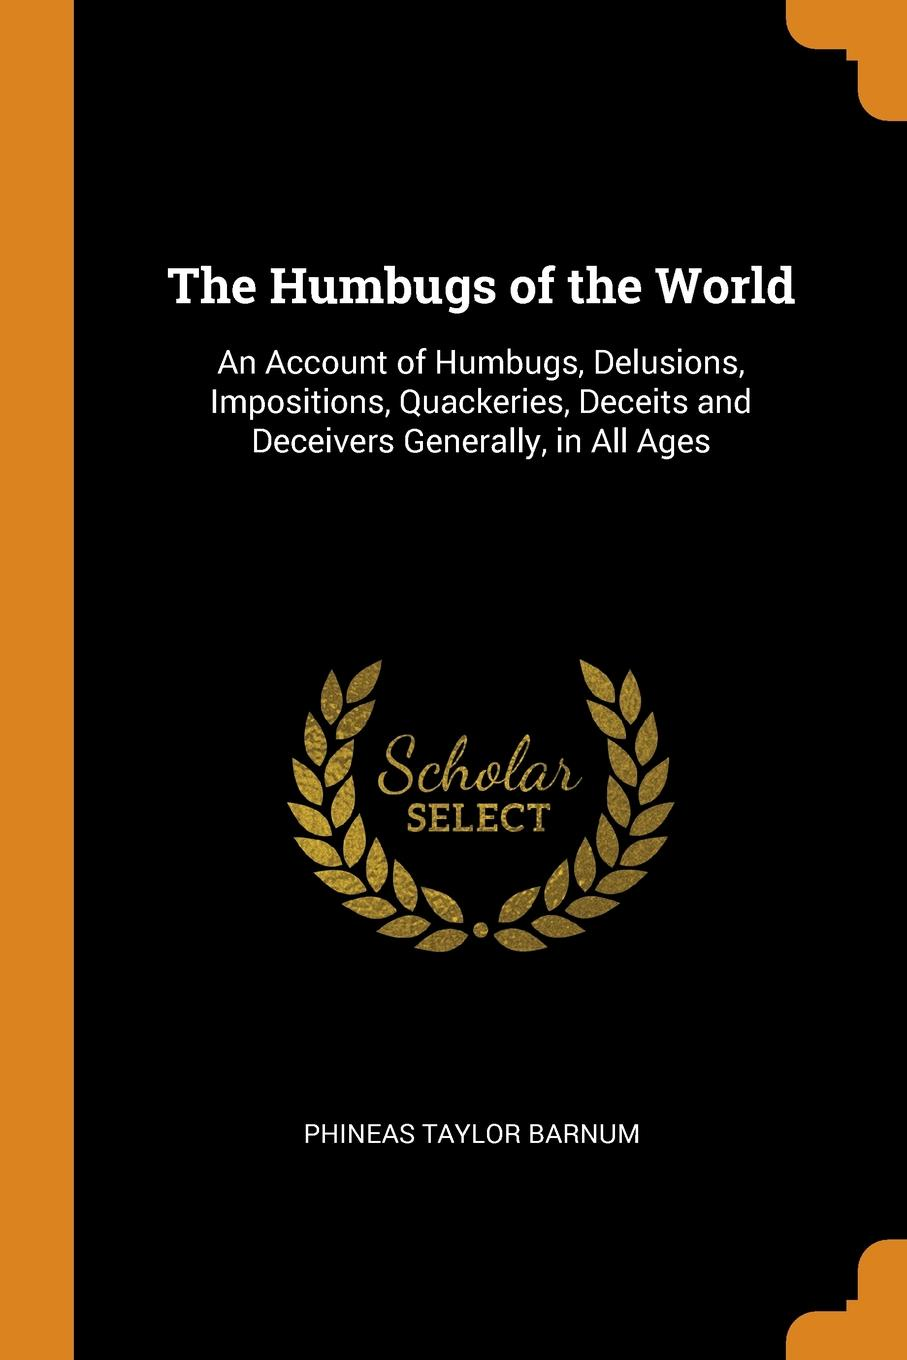 лучшая цена Phineas Taylor Barnum The Humbugs of the World. An Account of Humbugs, Delusions, Impositions, Quackeries, Deceits and Deceivers Generally, in All Ages